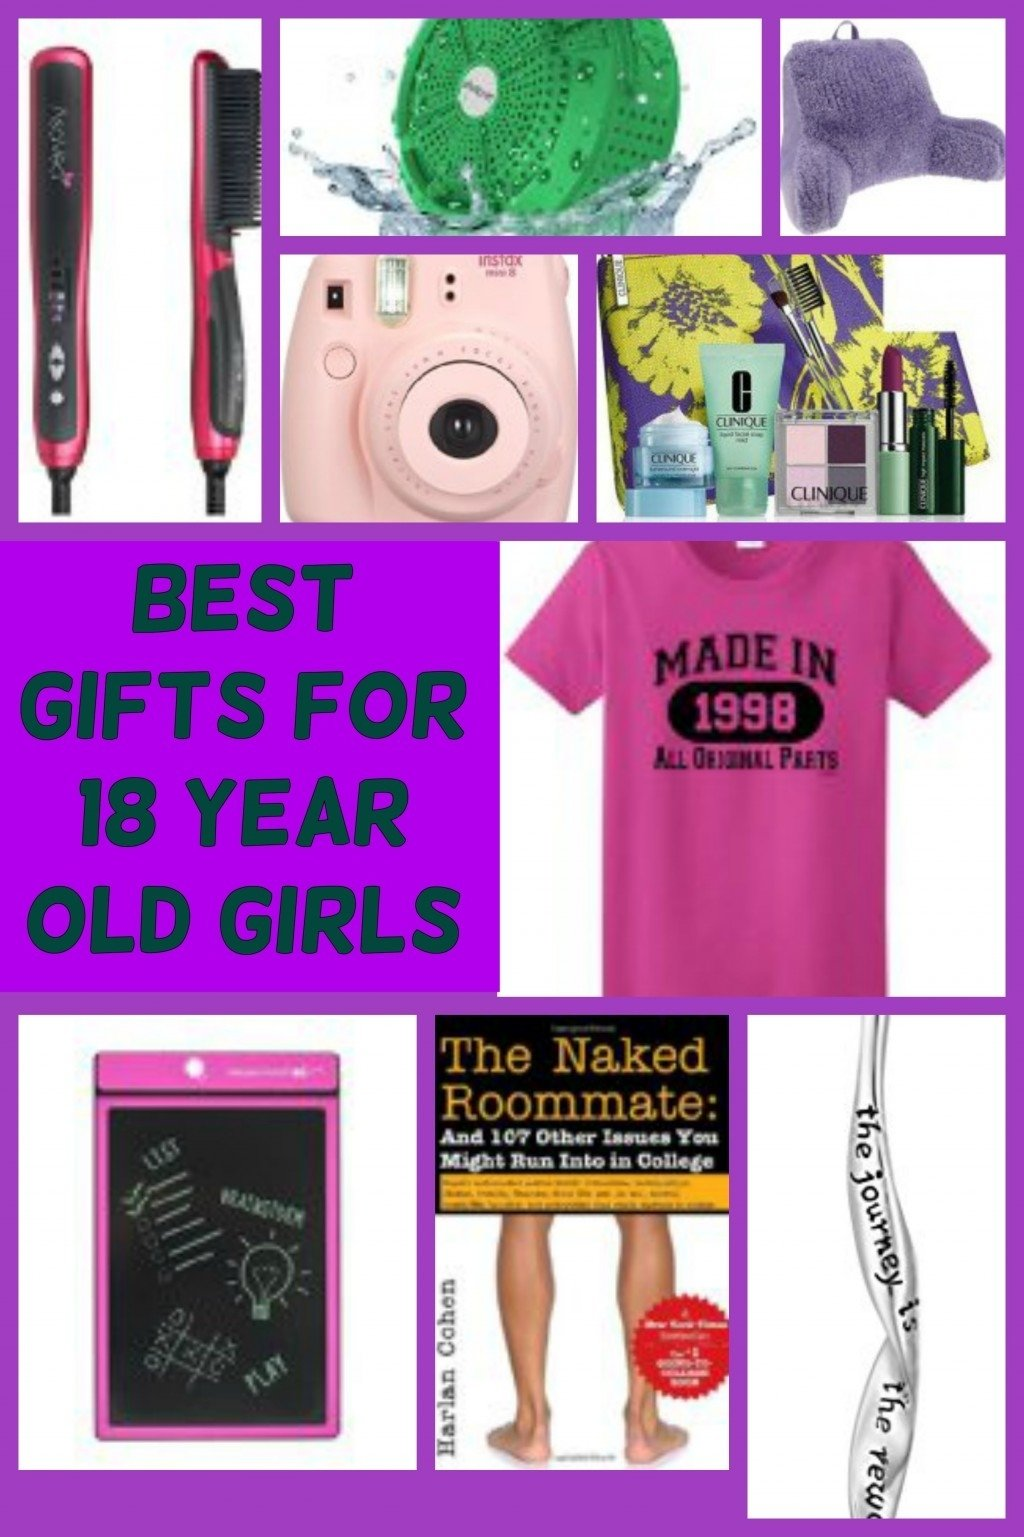 Gift ideas for 2 year old girl gifts for christmas